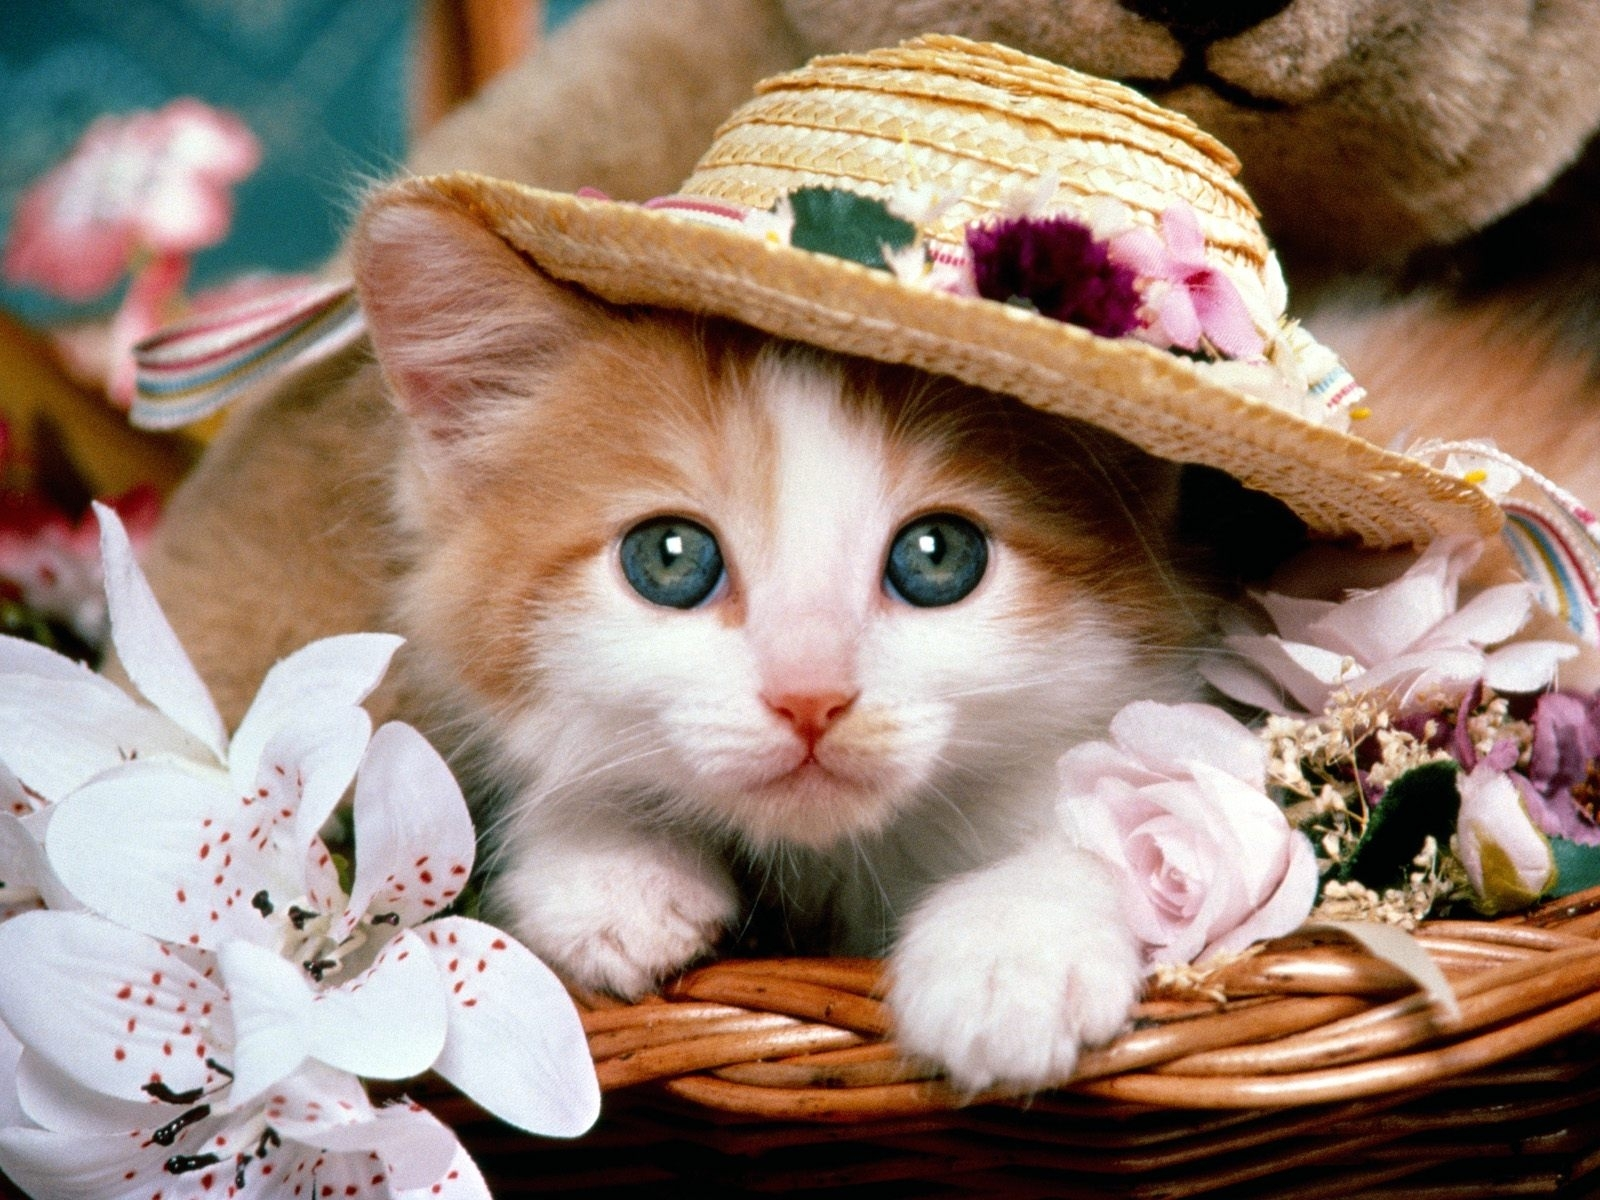 6295 download wallpaper Animals, Cats screensavers and pictures for free